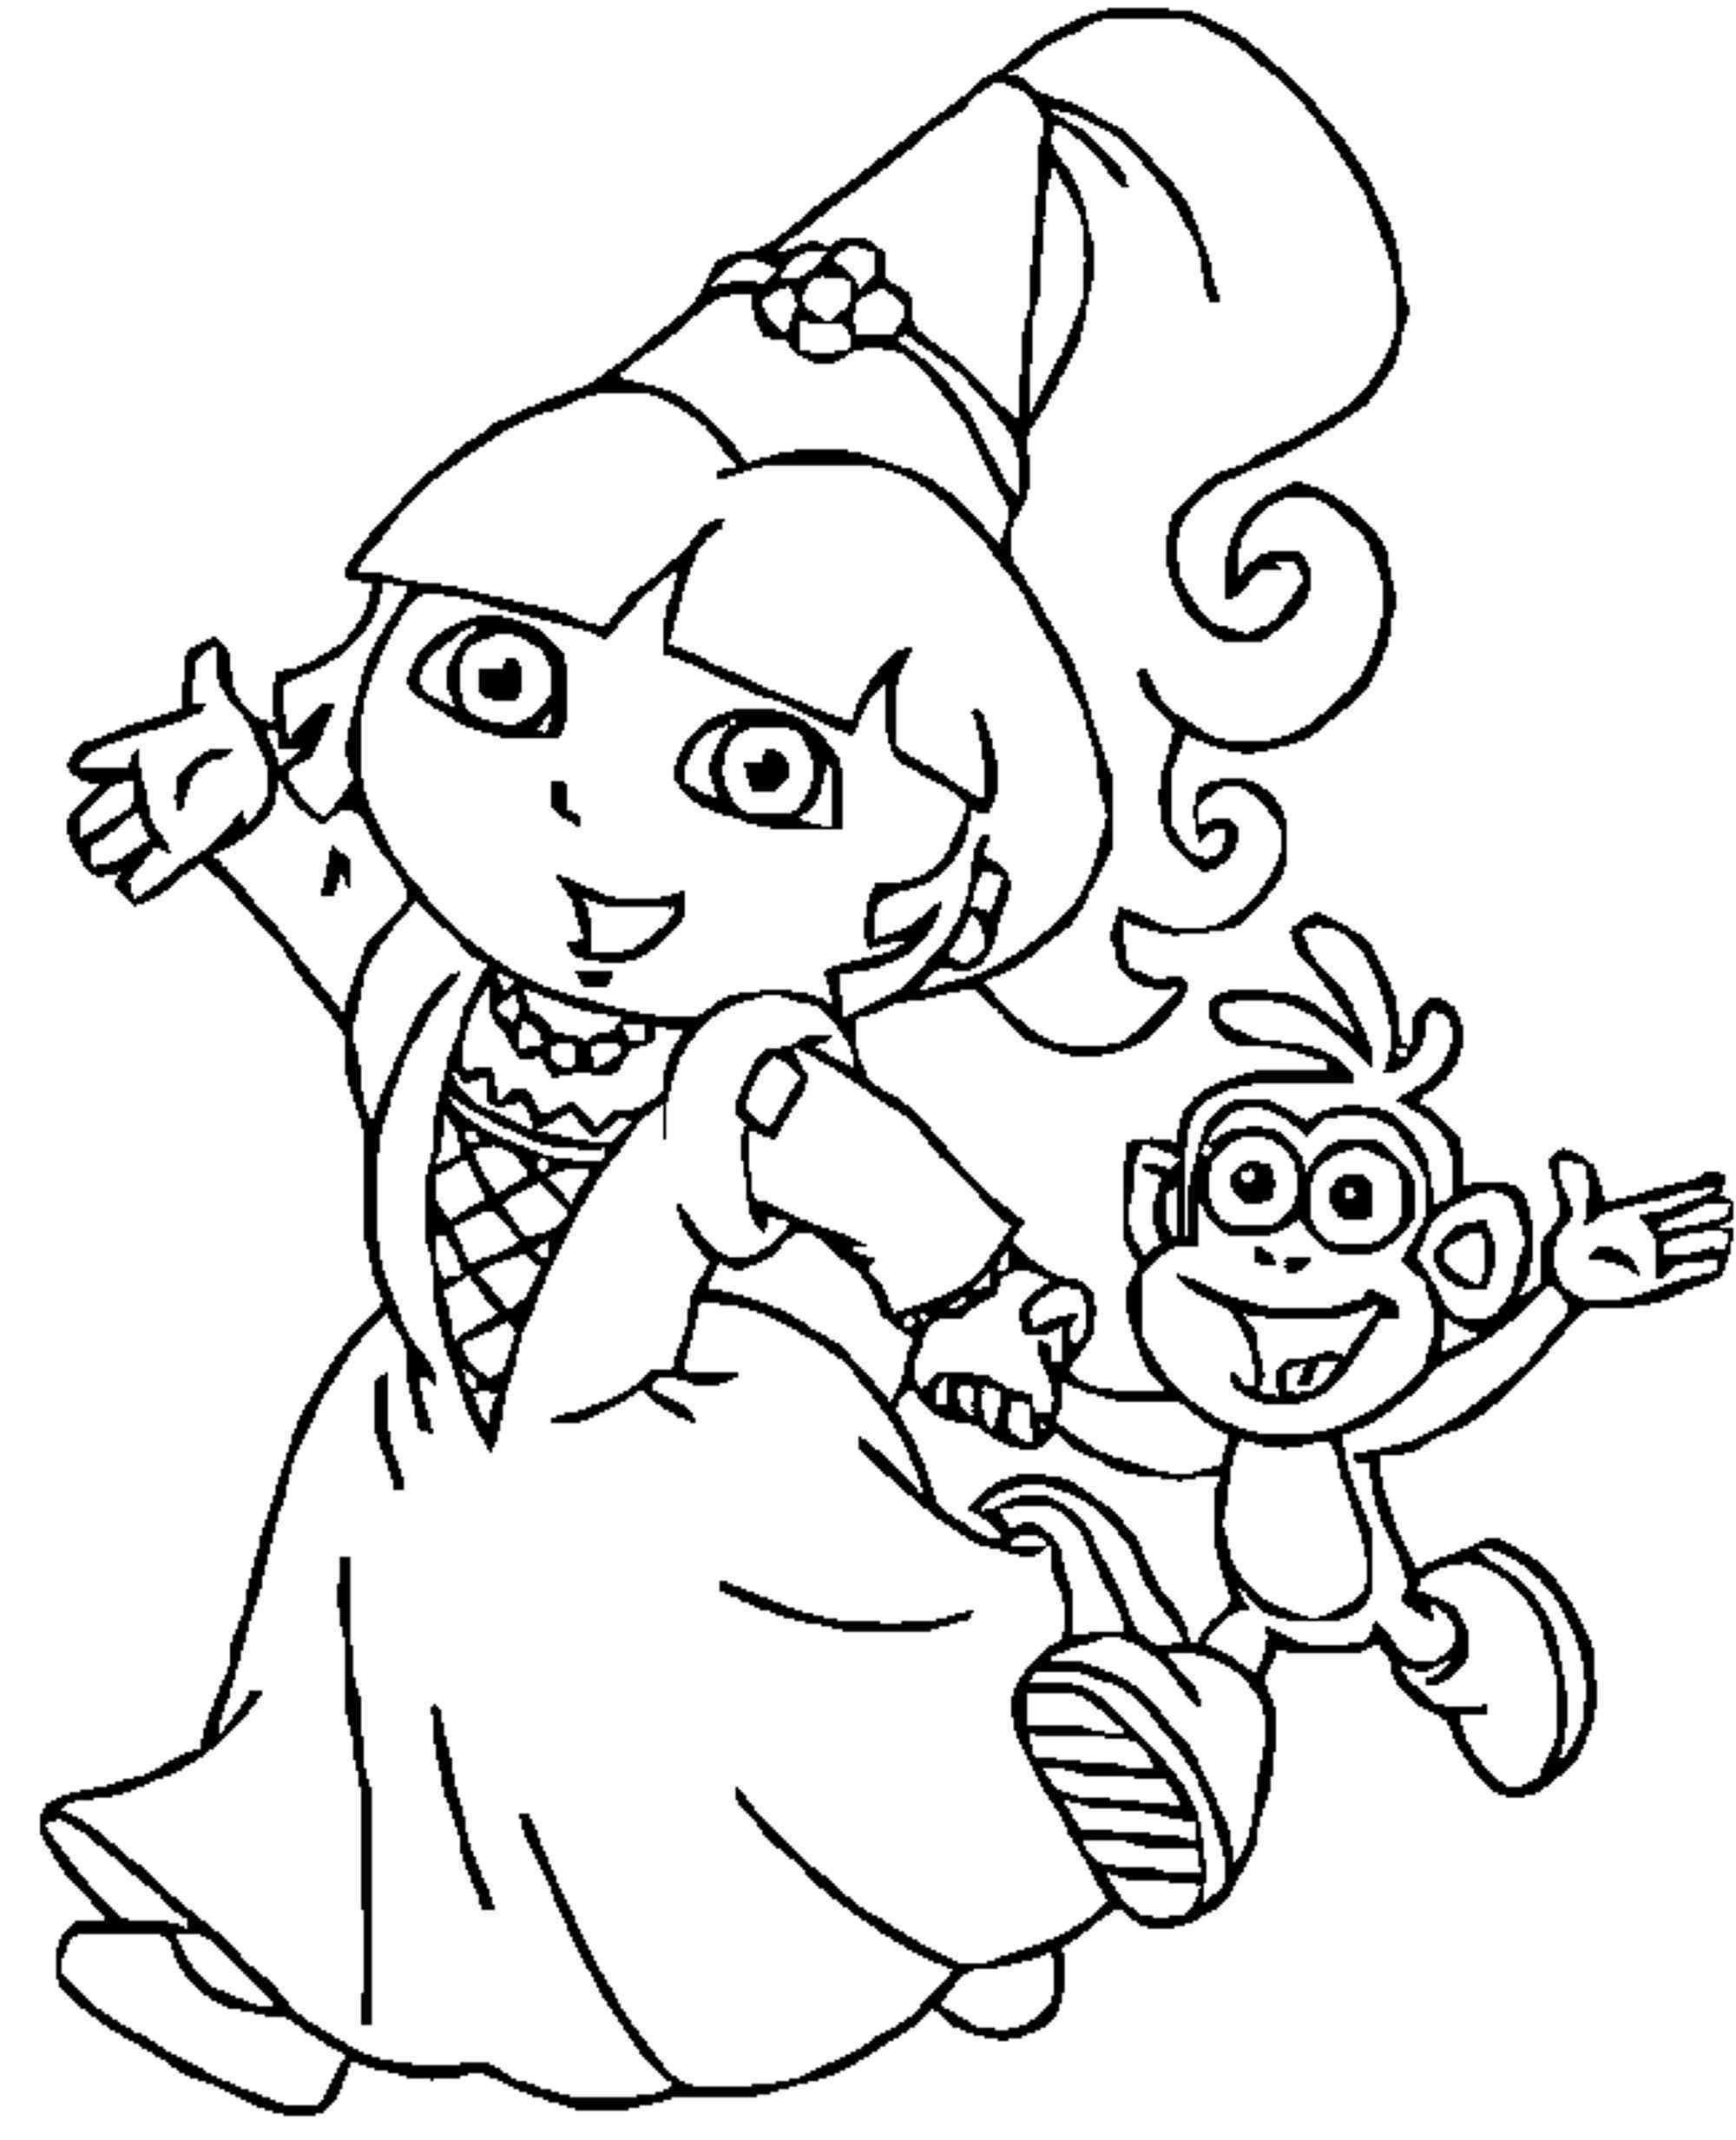 Dora Princess Printable Coloring Pages From The Thousand